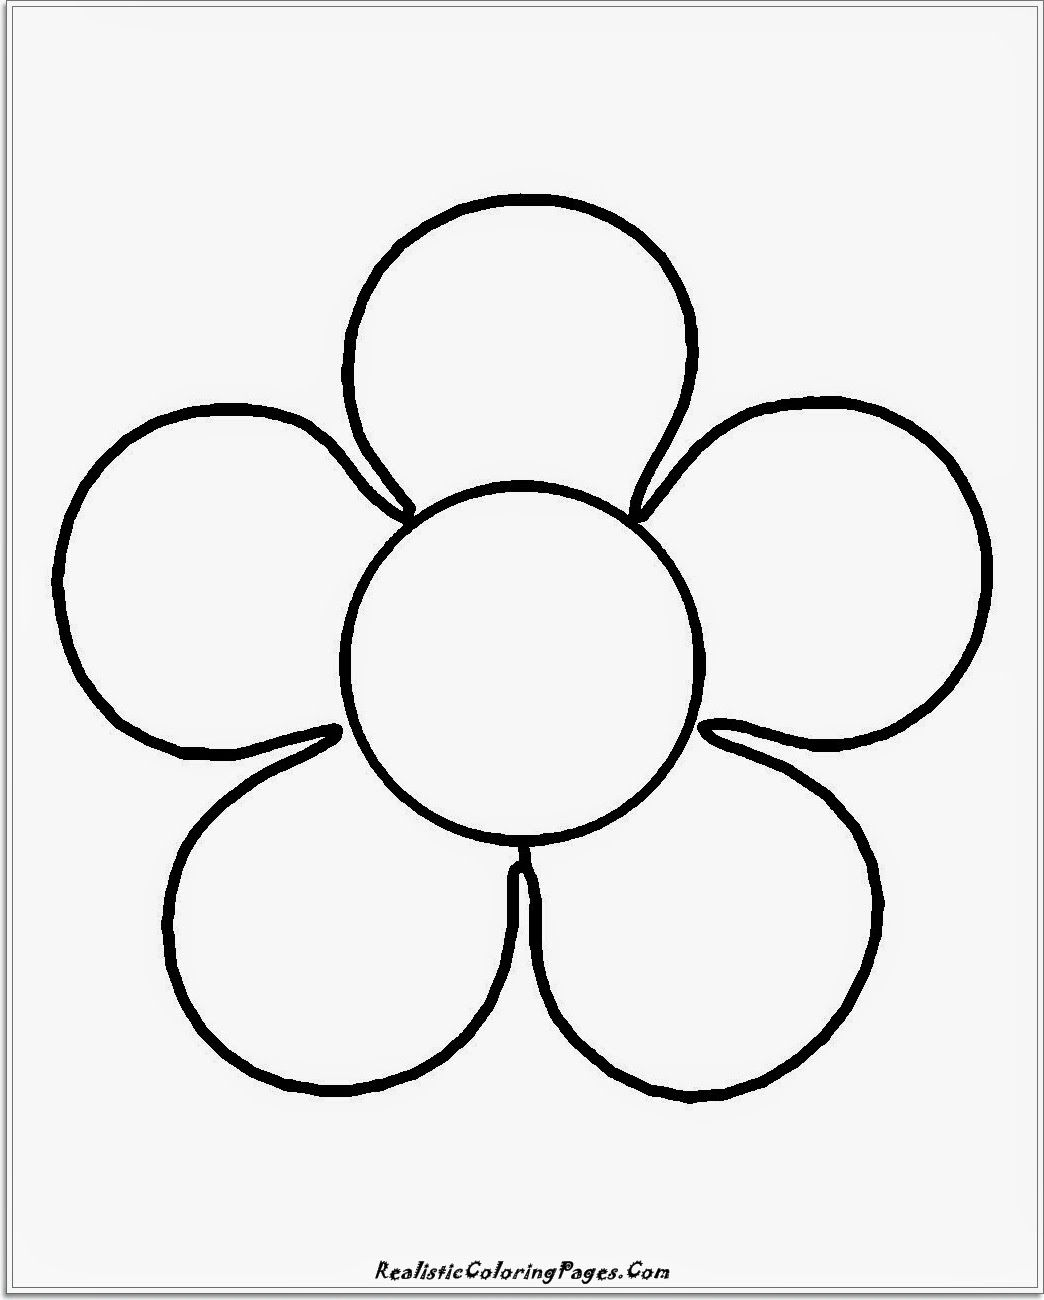 Flower coloring pages for kids for free ~ Easy Flower Coloring Pages - Coloring Home